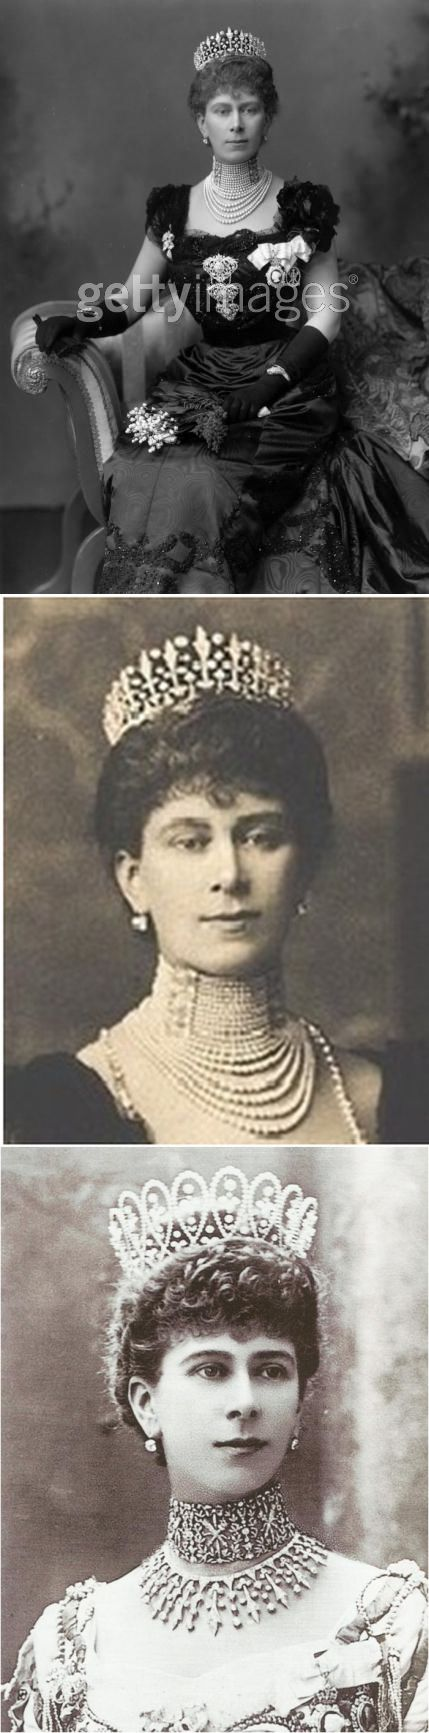 Surrey Fringe Tiara, a wedding gift given to Princess Mary of Teck (the future Queen Mary) by the County of Surrey -  modified fringe design.  Hasn't been seen since the early days of Mary's marriage.  Broken up in 1913/14 to make the Gloucester Honeysuckle tiara some stones going to enhance the Girls of Great Britain and Ireland tiara. Like most fringe tiaras, it could be worn as a necklace - bottom picture, where she's wearing the Loop tiara, itself broken up to create the Delhi Durbar…